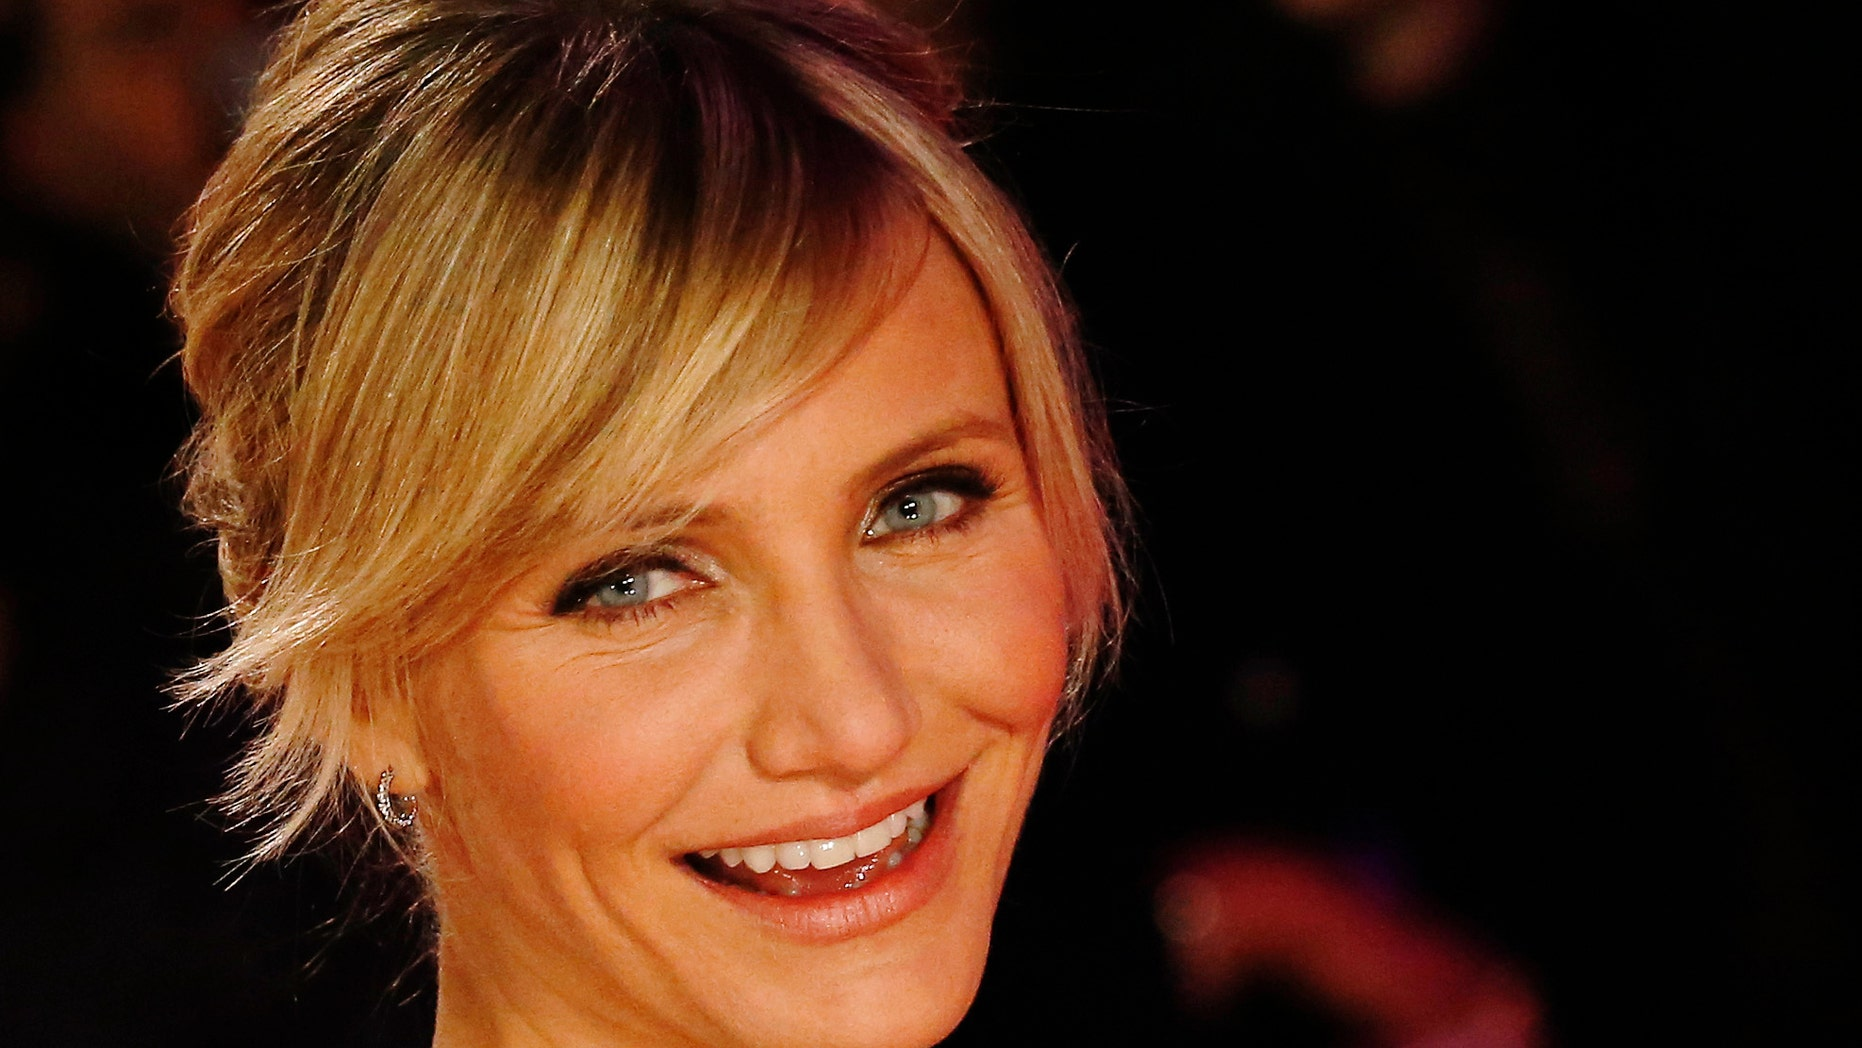 """November 7, 2012. Cameron Diaz arrives for the world premiere of the film """"Gambit"""" at Leicester Square in London."""